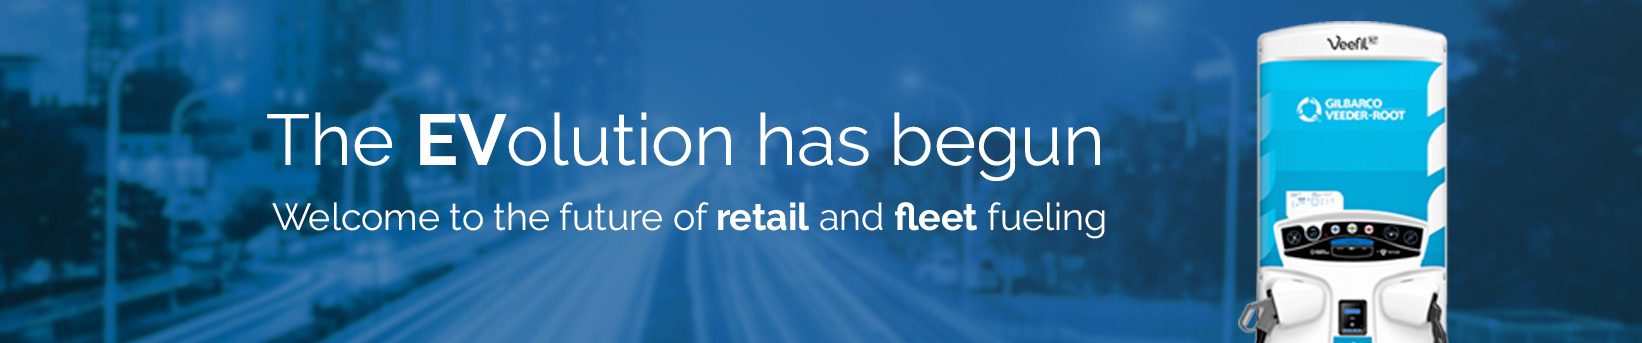 The EVolution has begun. Welcome to the future of retail and fleet fueling